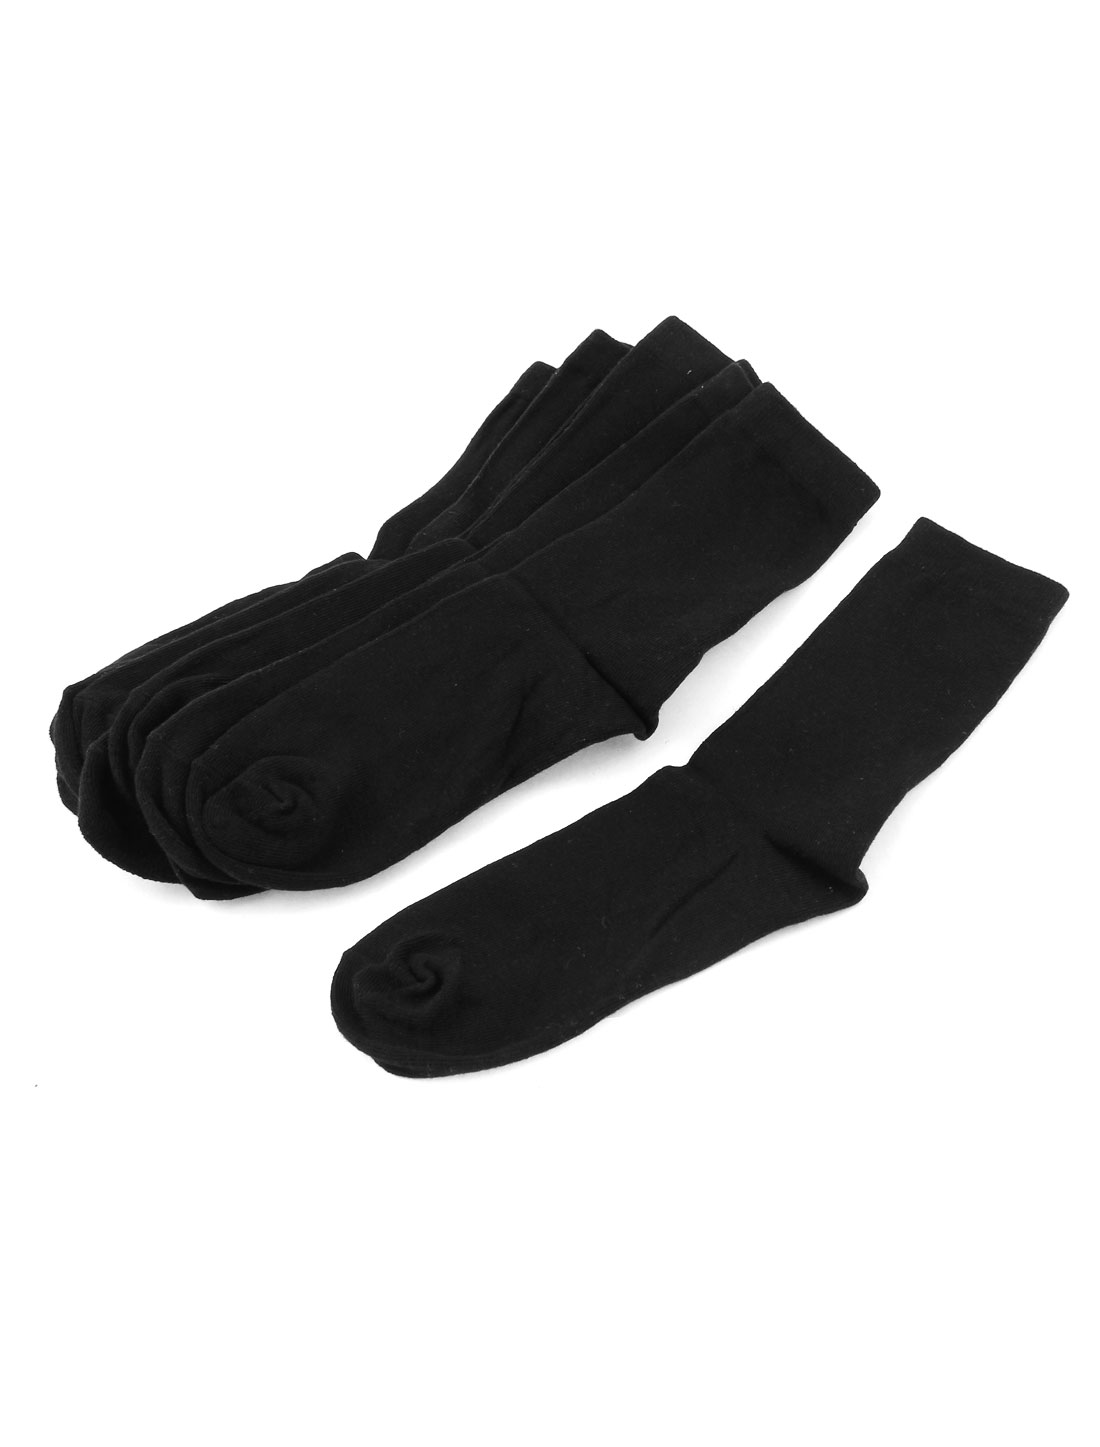 5Pairs Black Cotton Blends Elastic Cuff Casual Hosiery Ankle High Crew Socks for Man